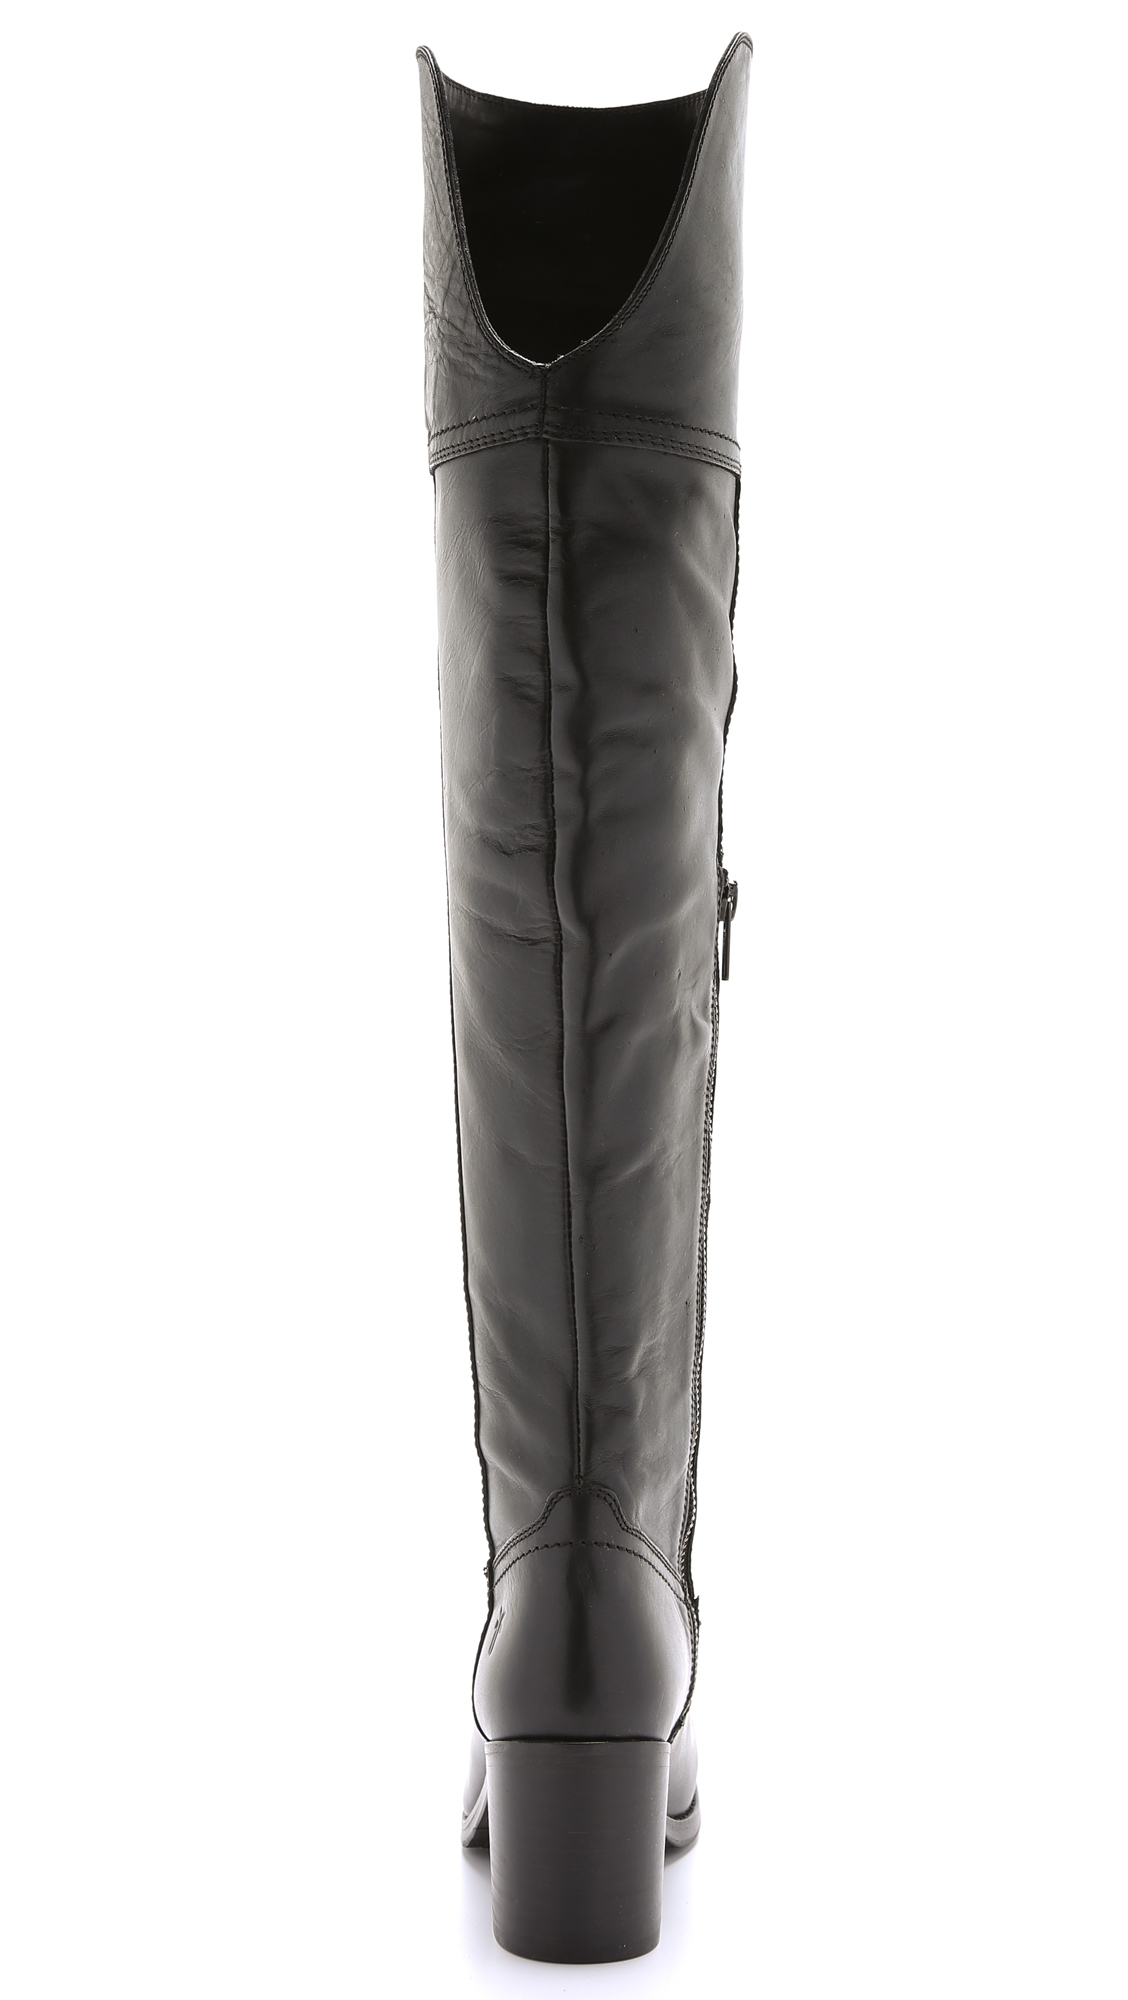 Frye Kendall Over The Knee Boots - Black